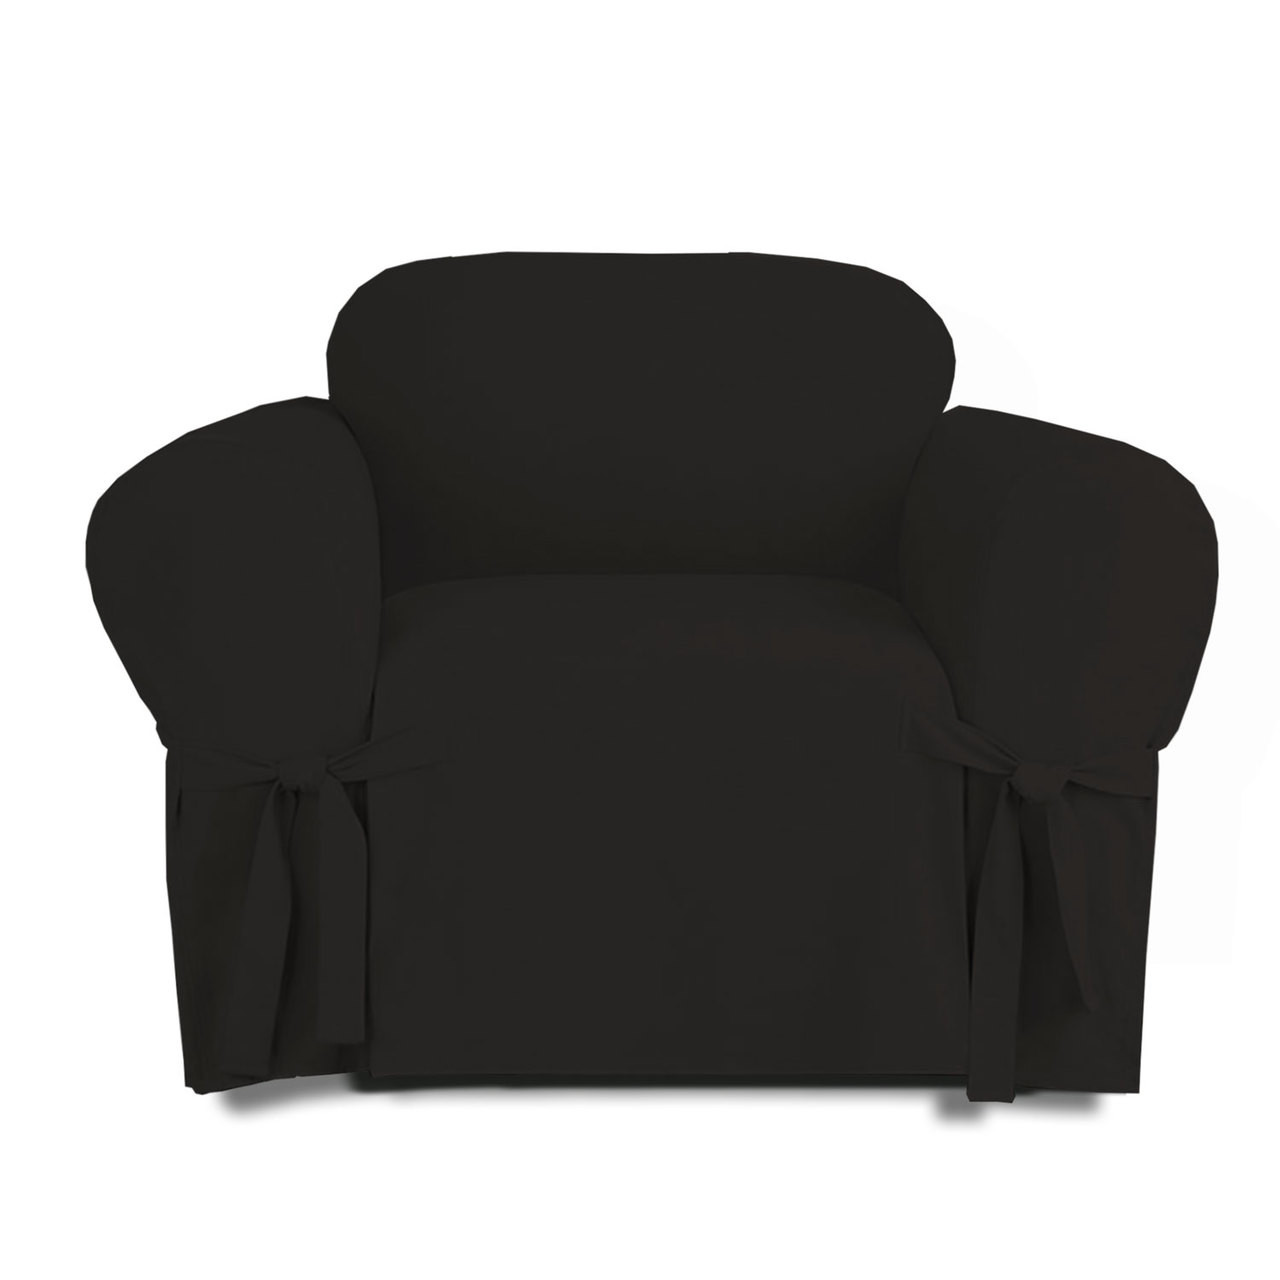 Linen Store Microsuede Slipcover Furniture Protector Cover Chair Black.